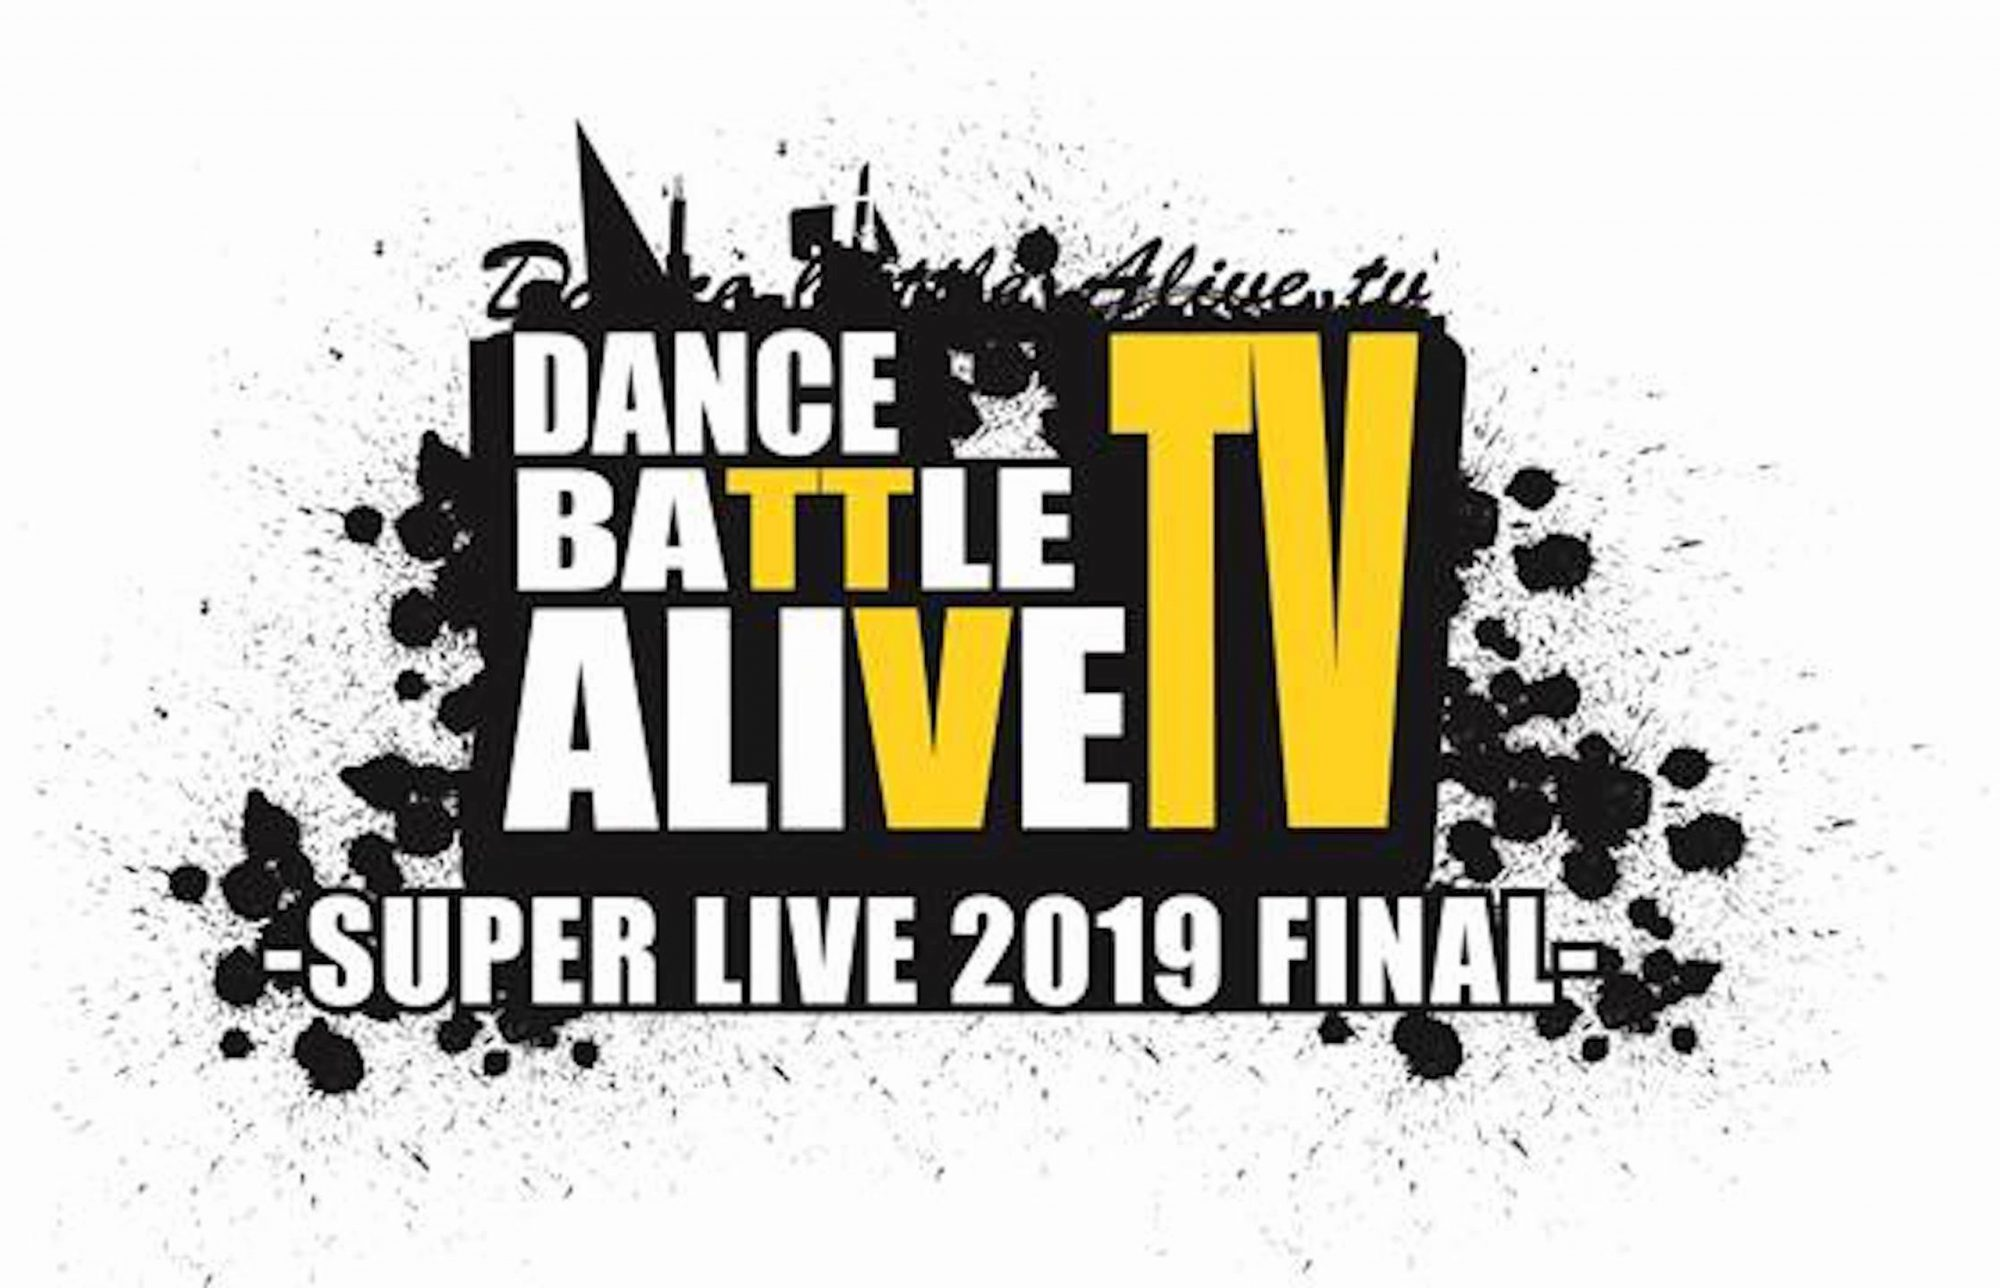 EXILE ÜSA、EXILE MAKIDAI、GENERATIONSの中務裕太が中継トークゲストで出演‼「マイナビDANCE ALIVE HERO'S 2019 FINAL」が独占生配信決定。